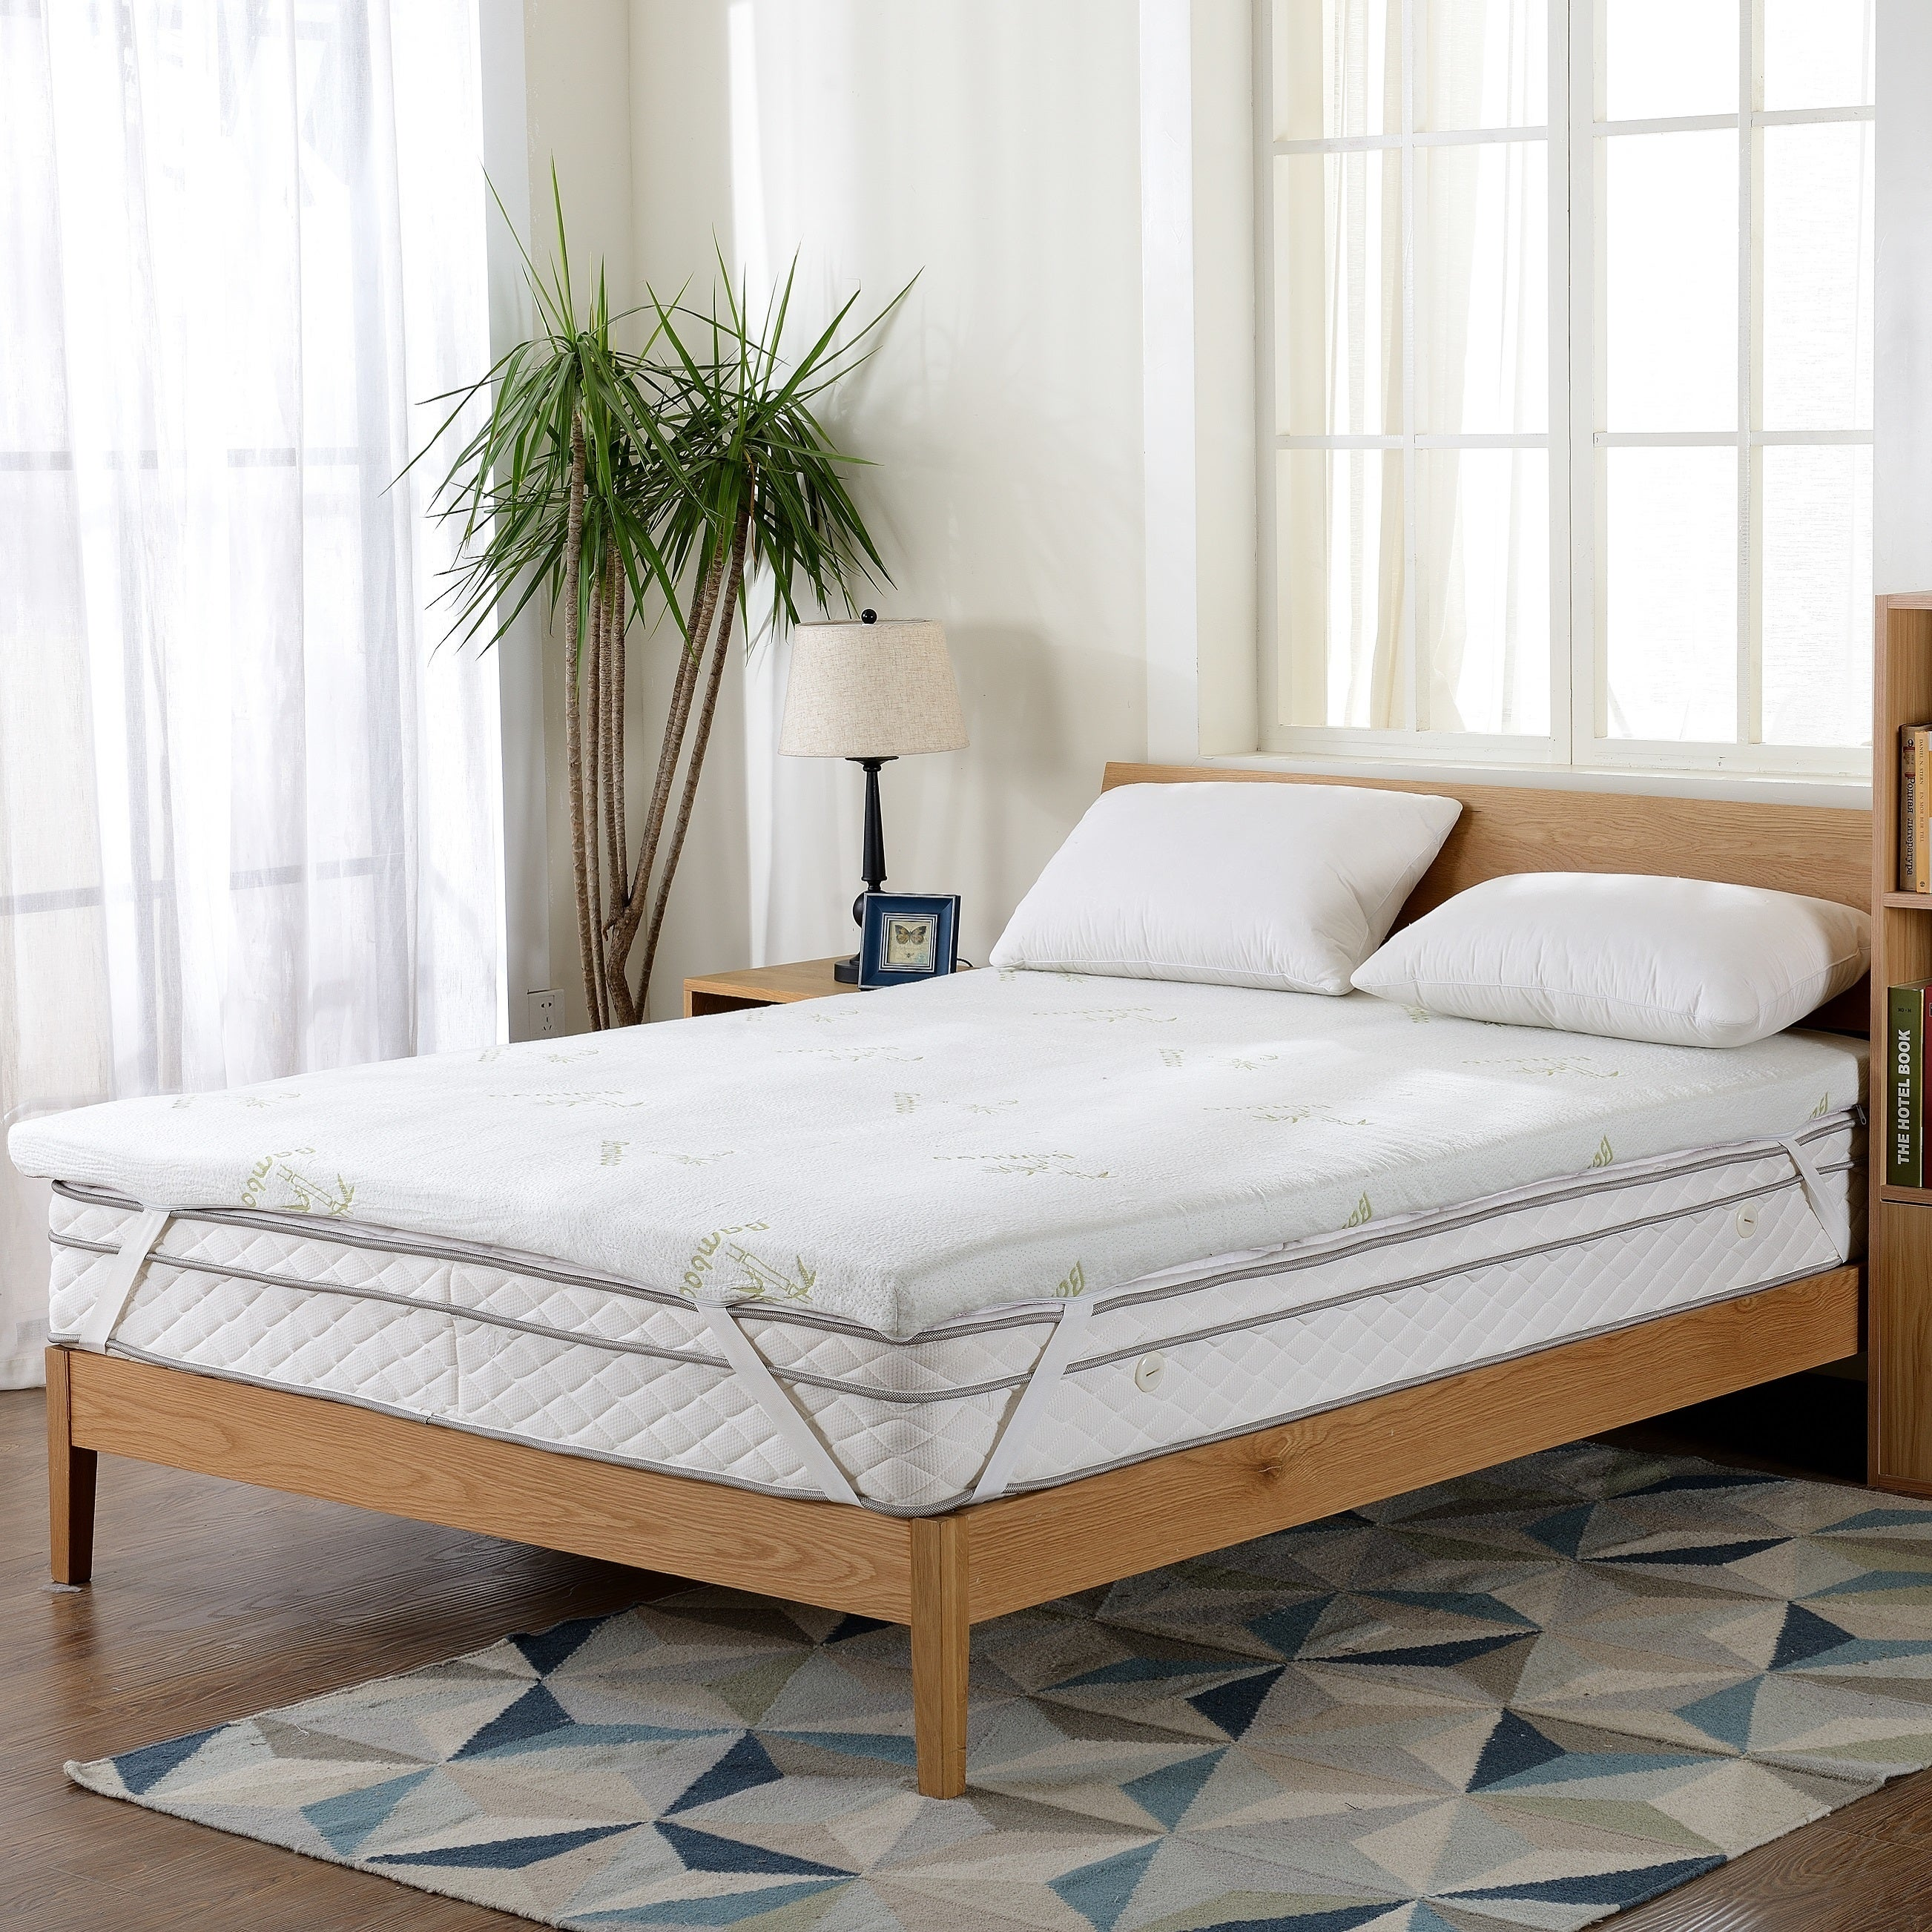 Cheer Collection Gel Infused Mattress Topper (King), Gree...